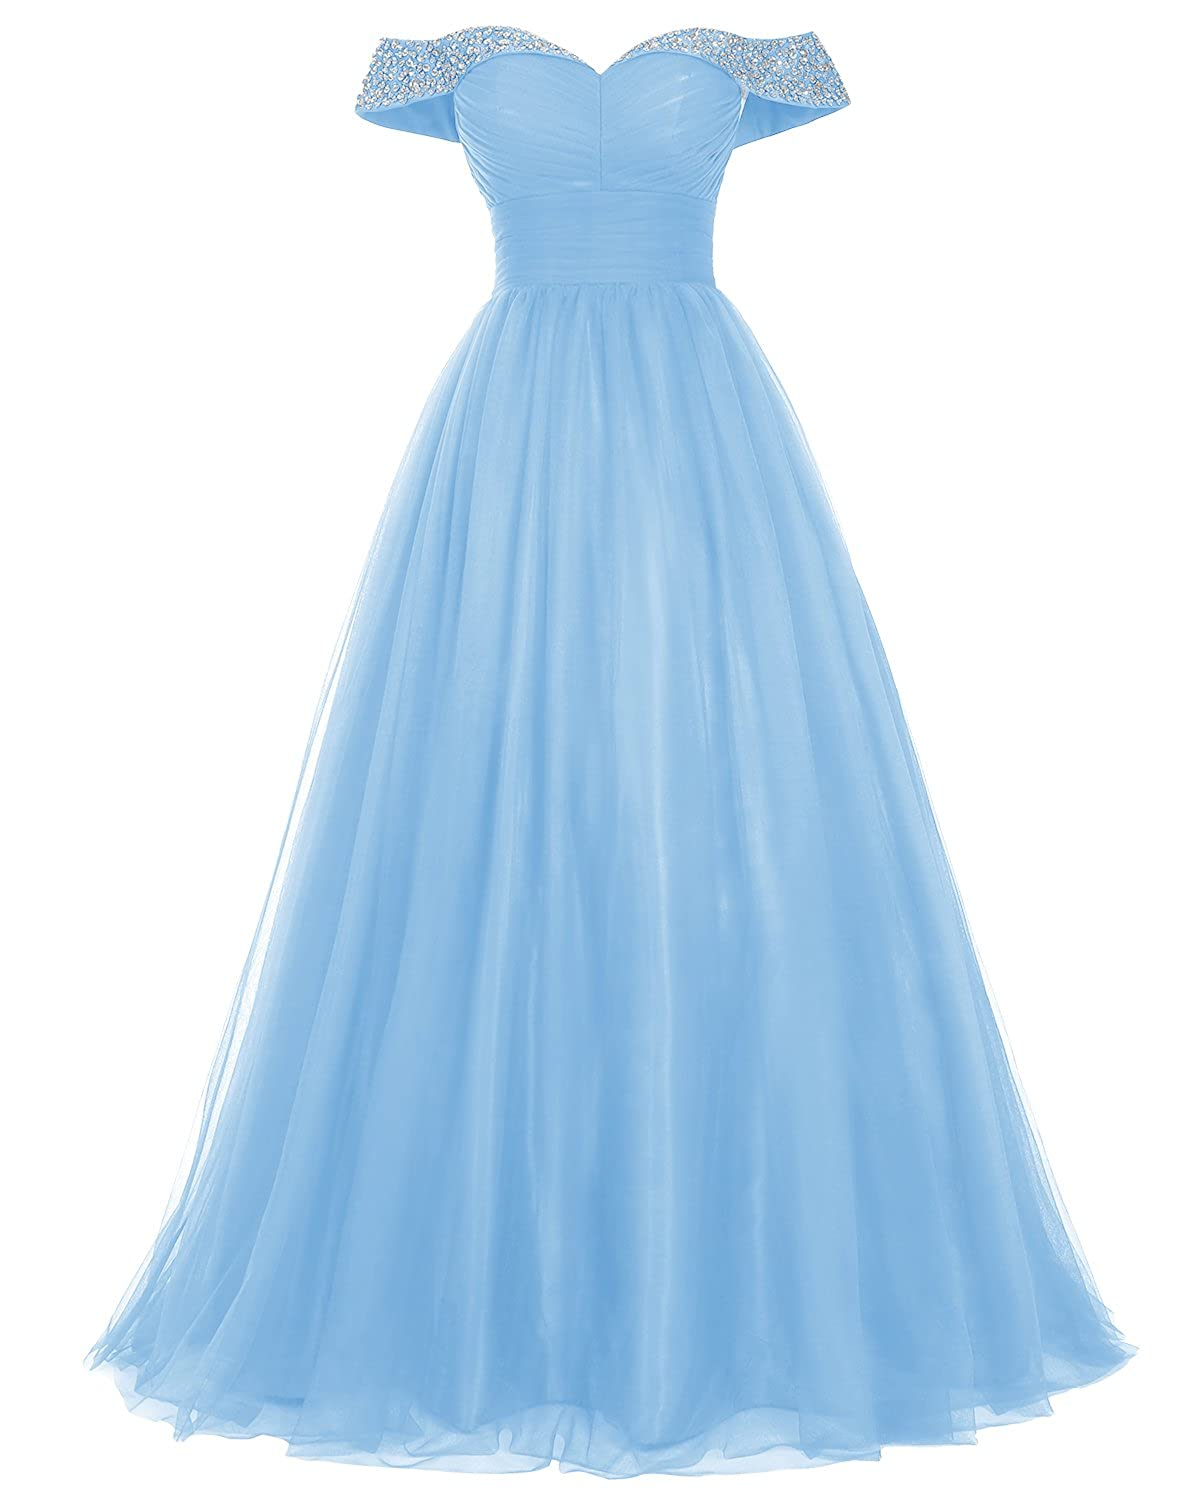 9960e8bbe7f8 Amazon.com: Bridesmay Women's Long Tulle Prom Dress Beaded Off Shoulder  Formal Evening Gown Dresses: Clothing